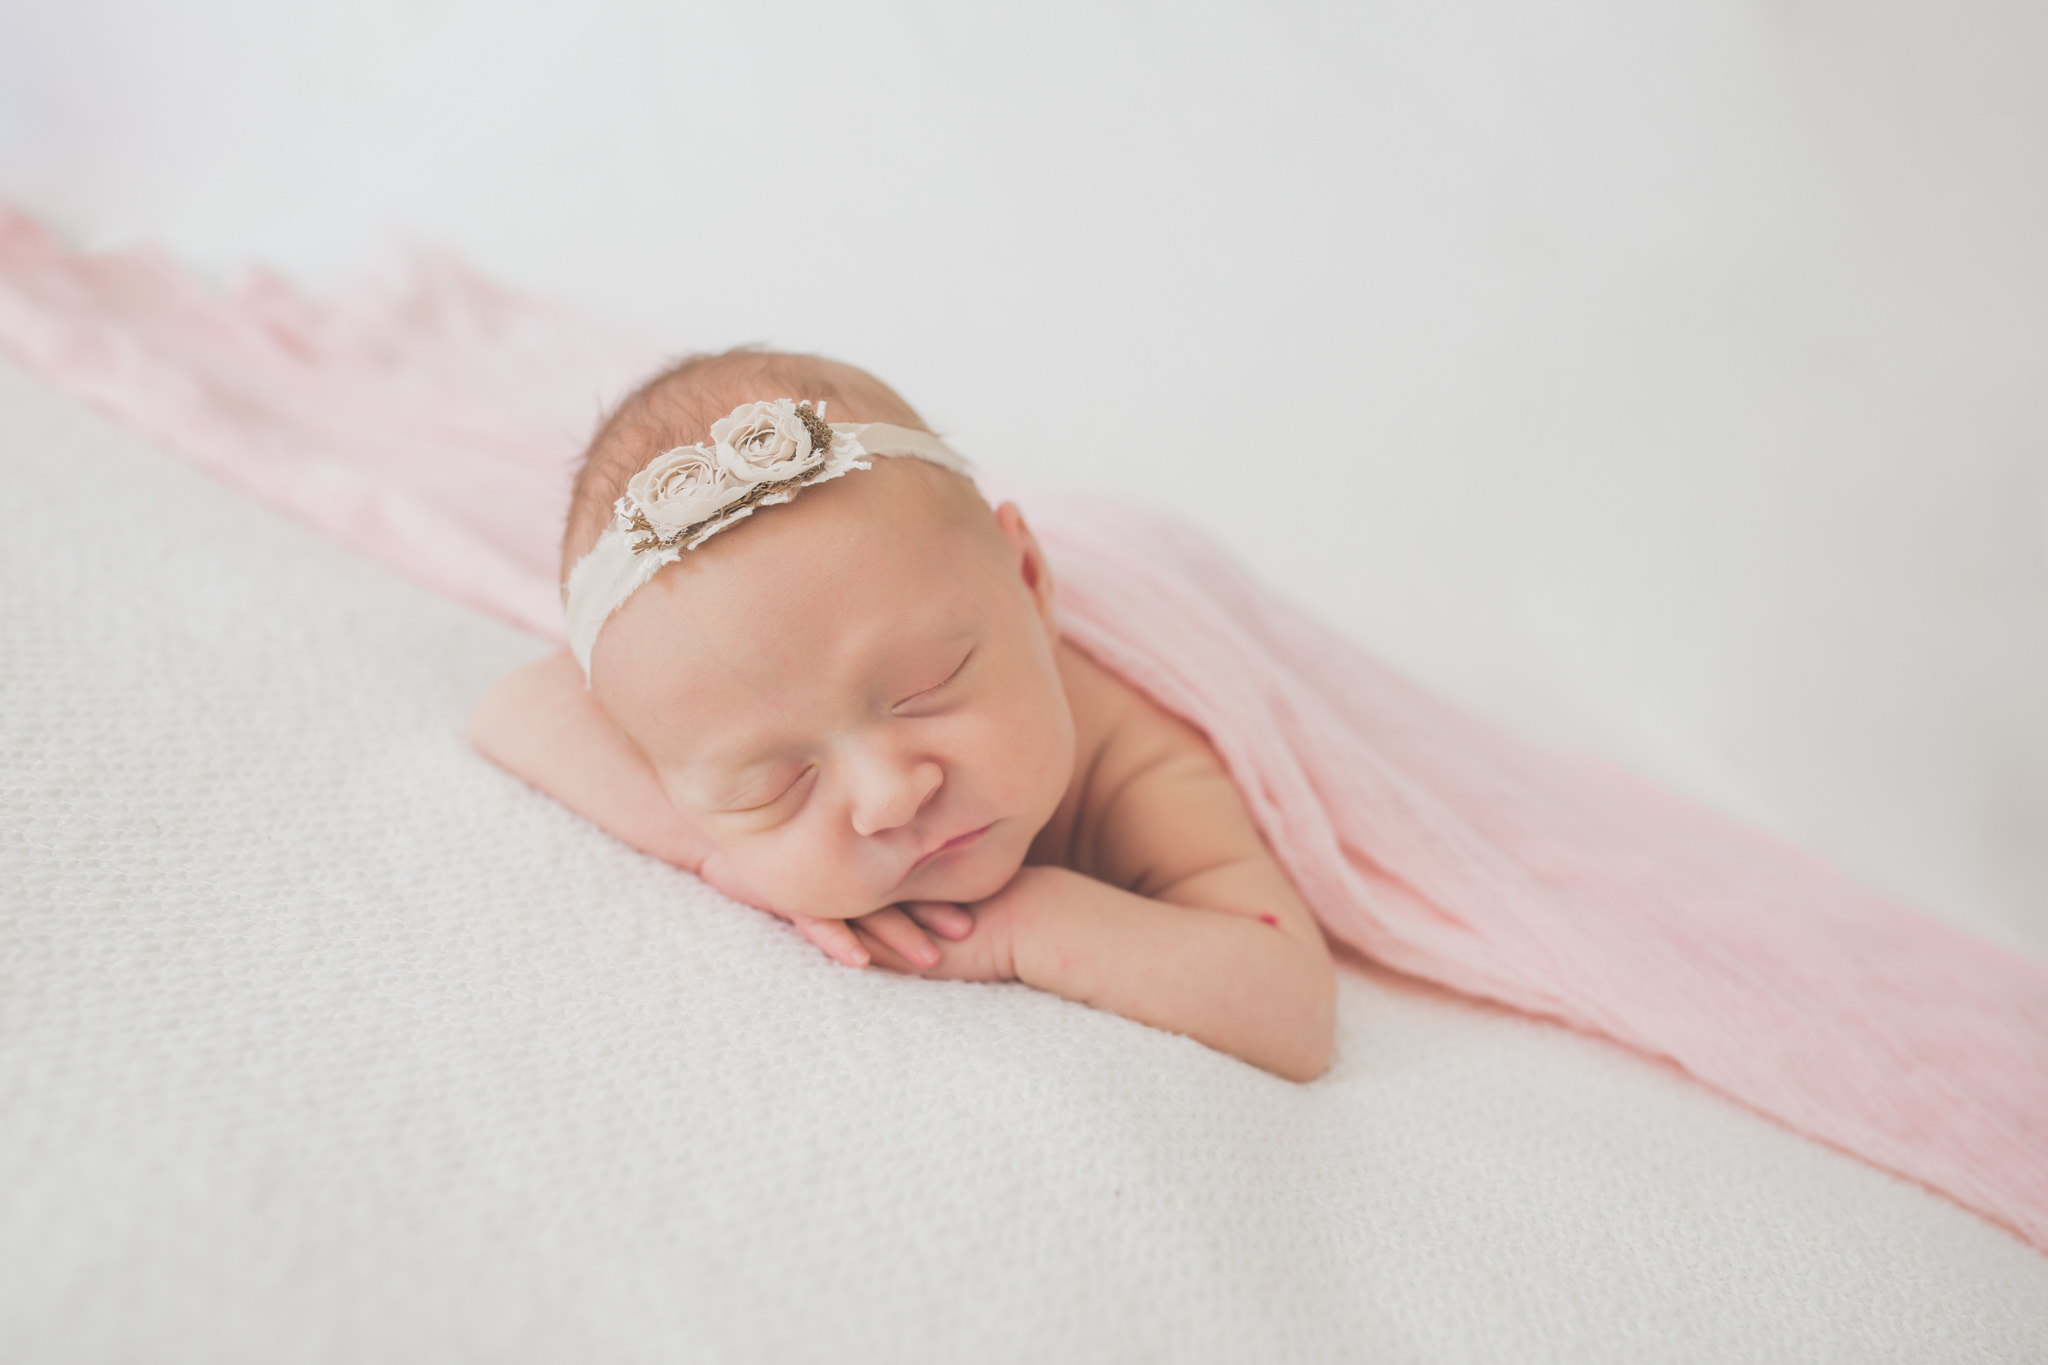 Newborn photographer 815 lifestyle Studio Session Cara Peterson Photography Rockford IL -31.jpg